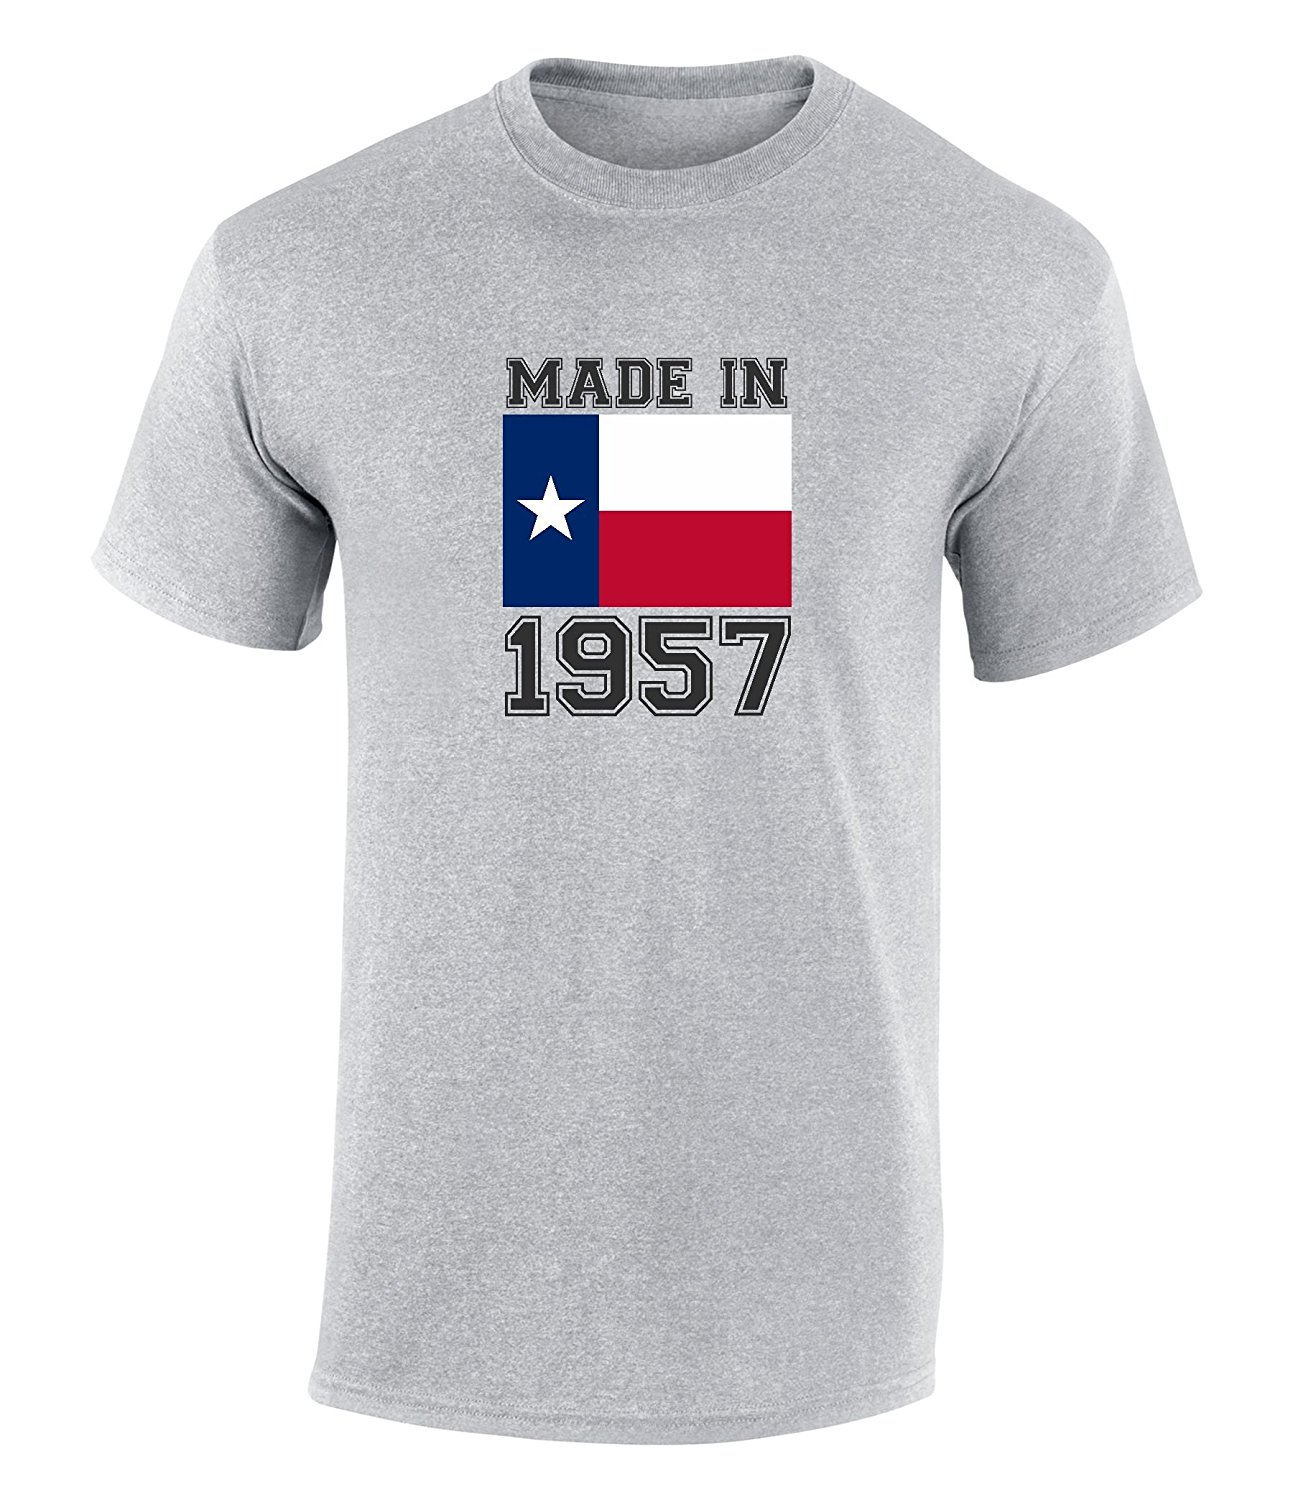 Happy 60th Birthday Gift T Shirt With Made In Texas 1957 Graphic Print Novelty Cool Tops Men Short Sleeve Tshirt